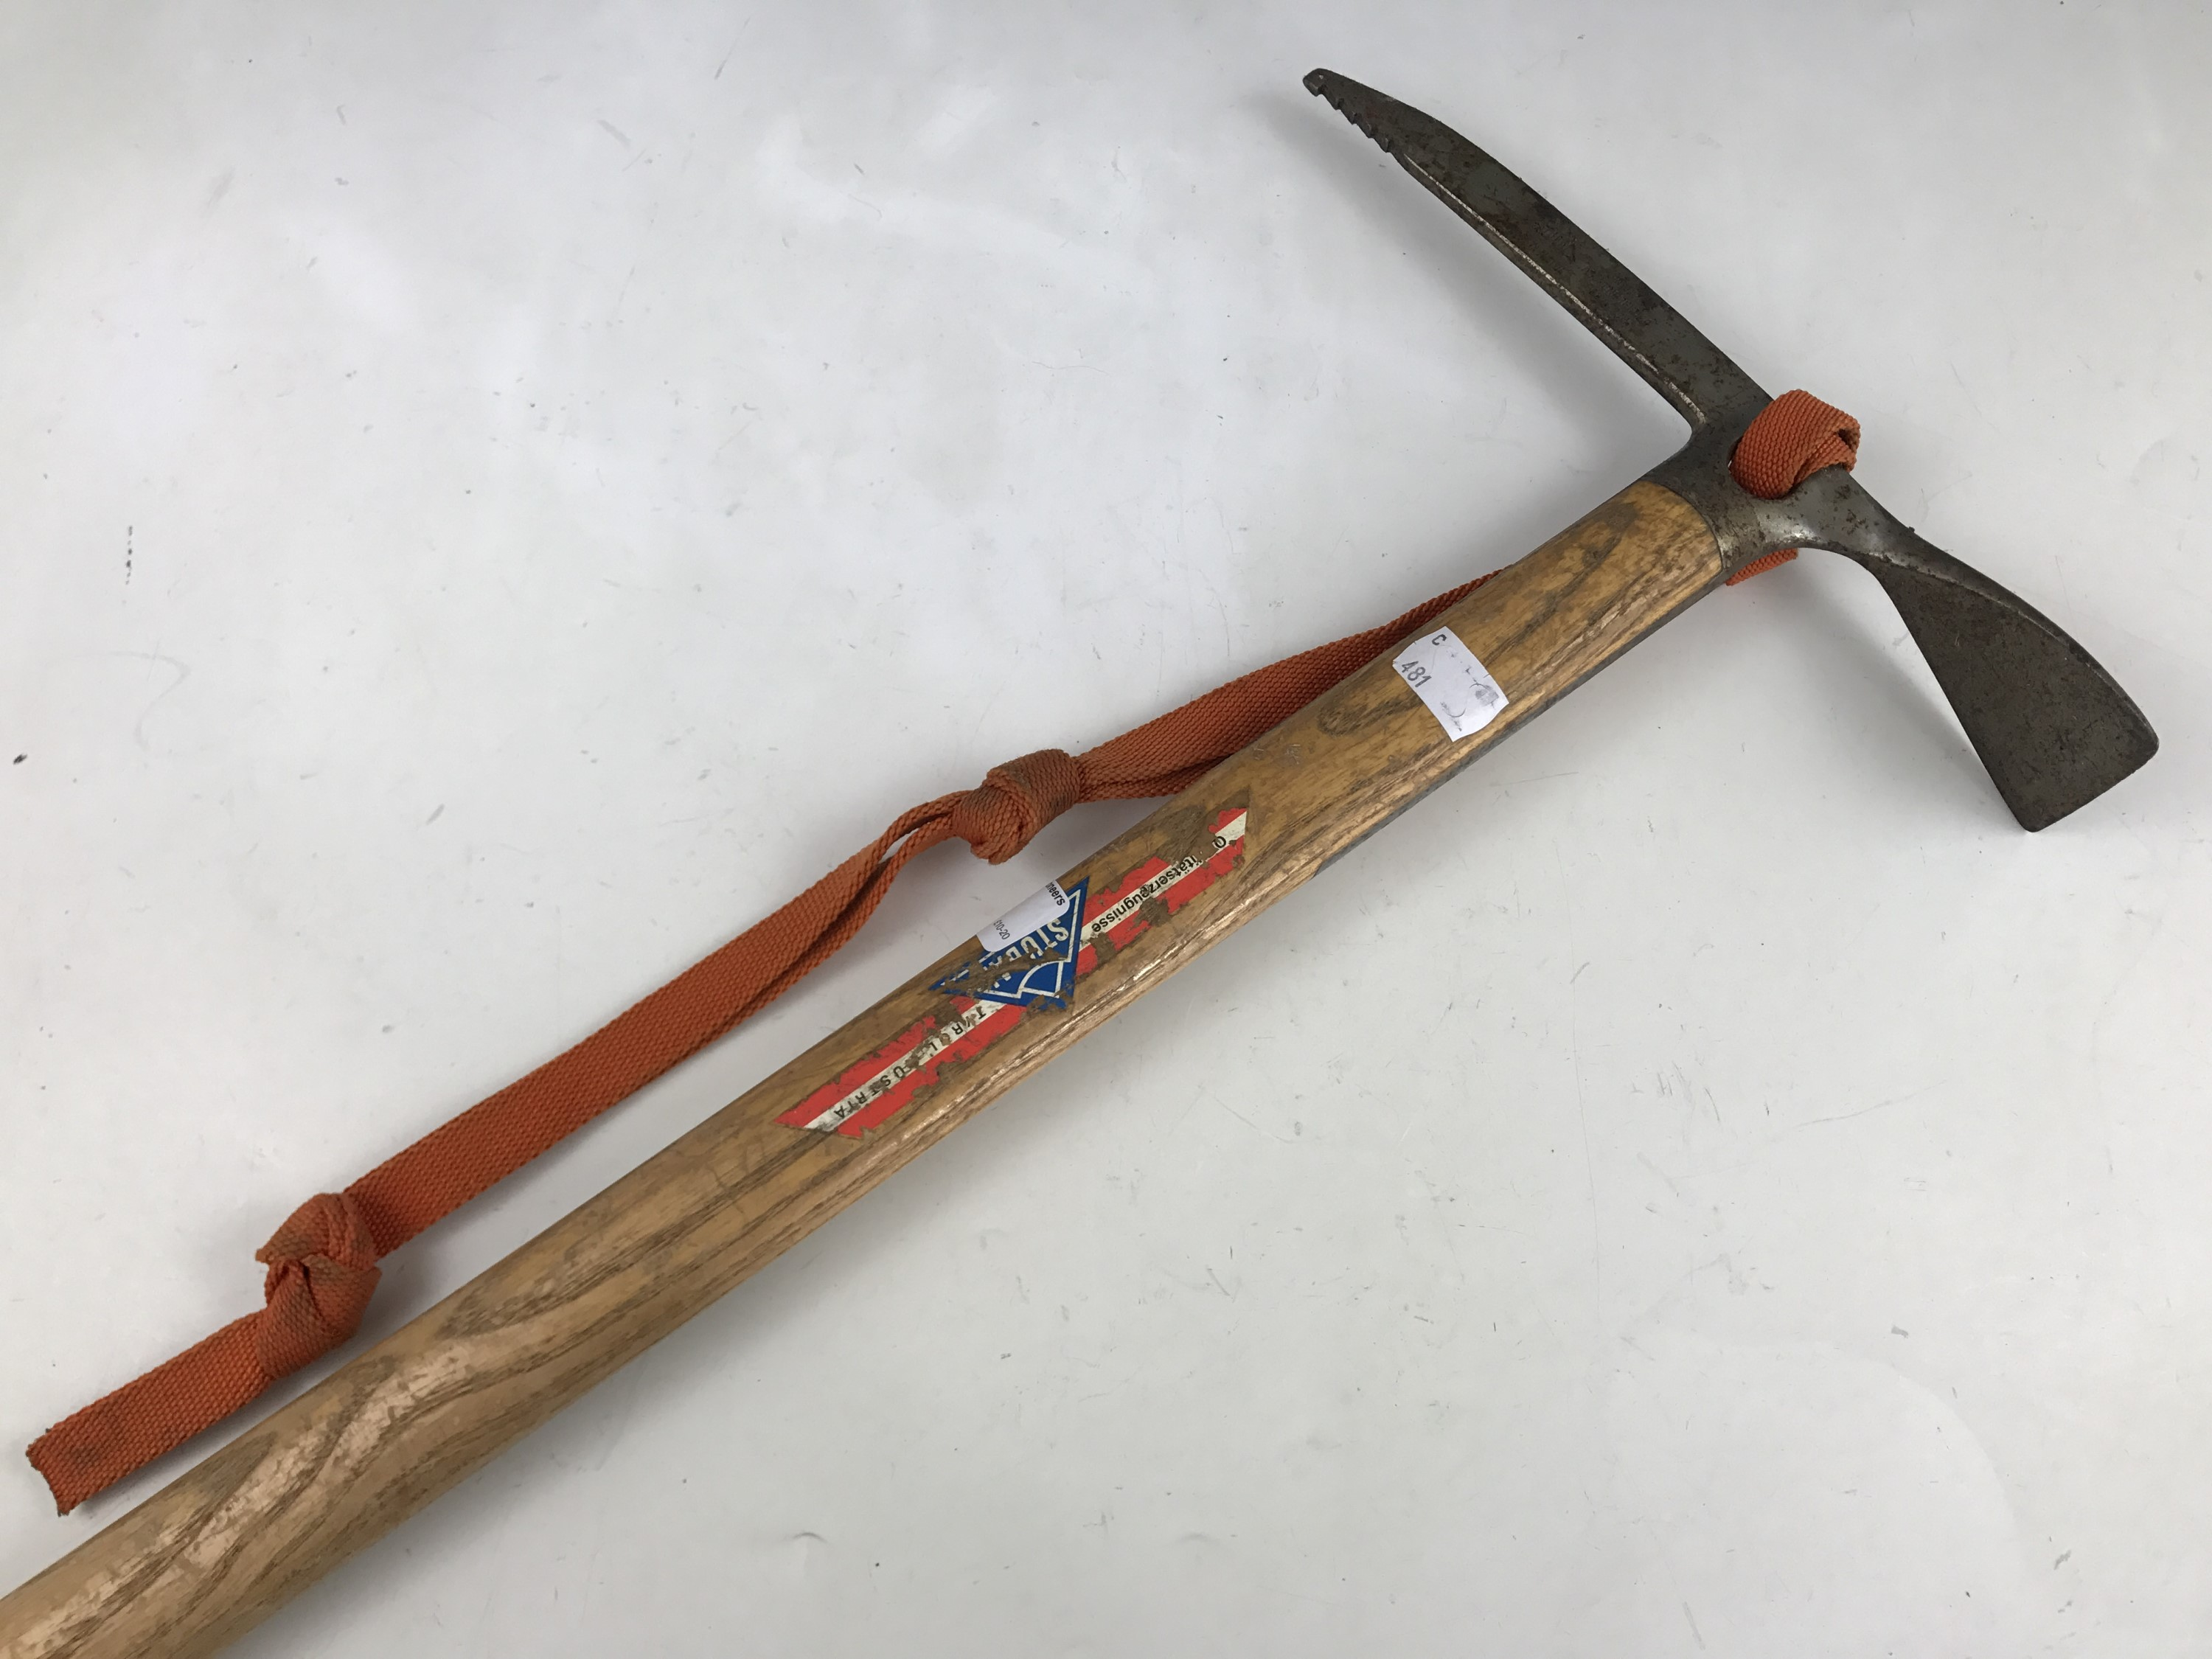 Lot 26 - A vintage Stubai ice axe